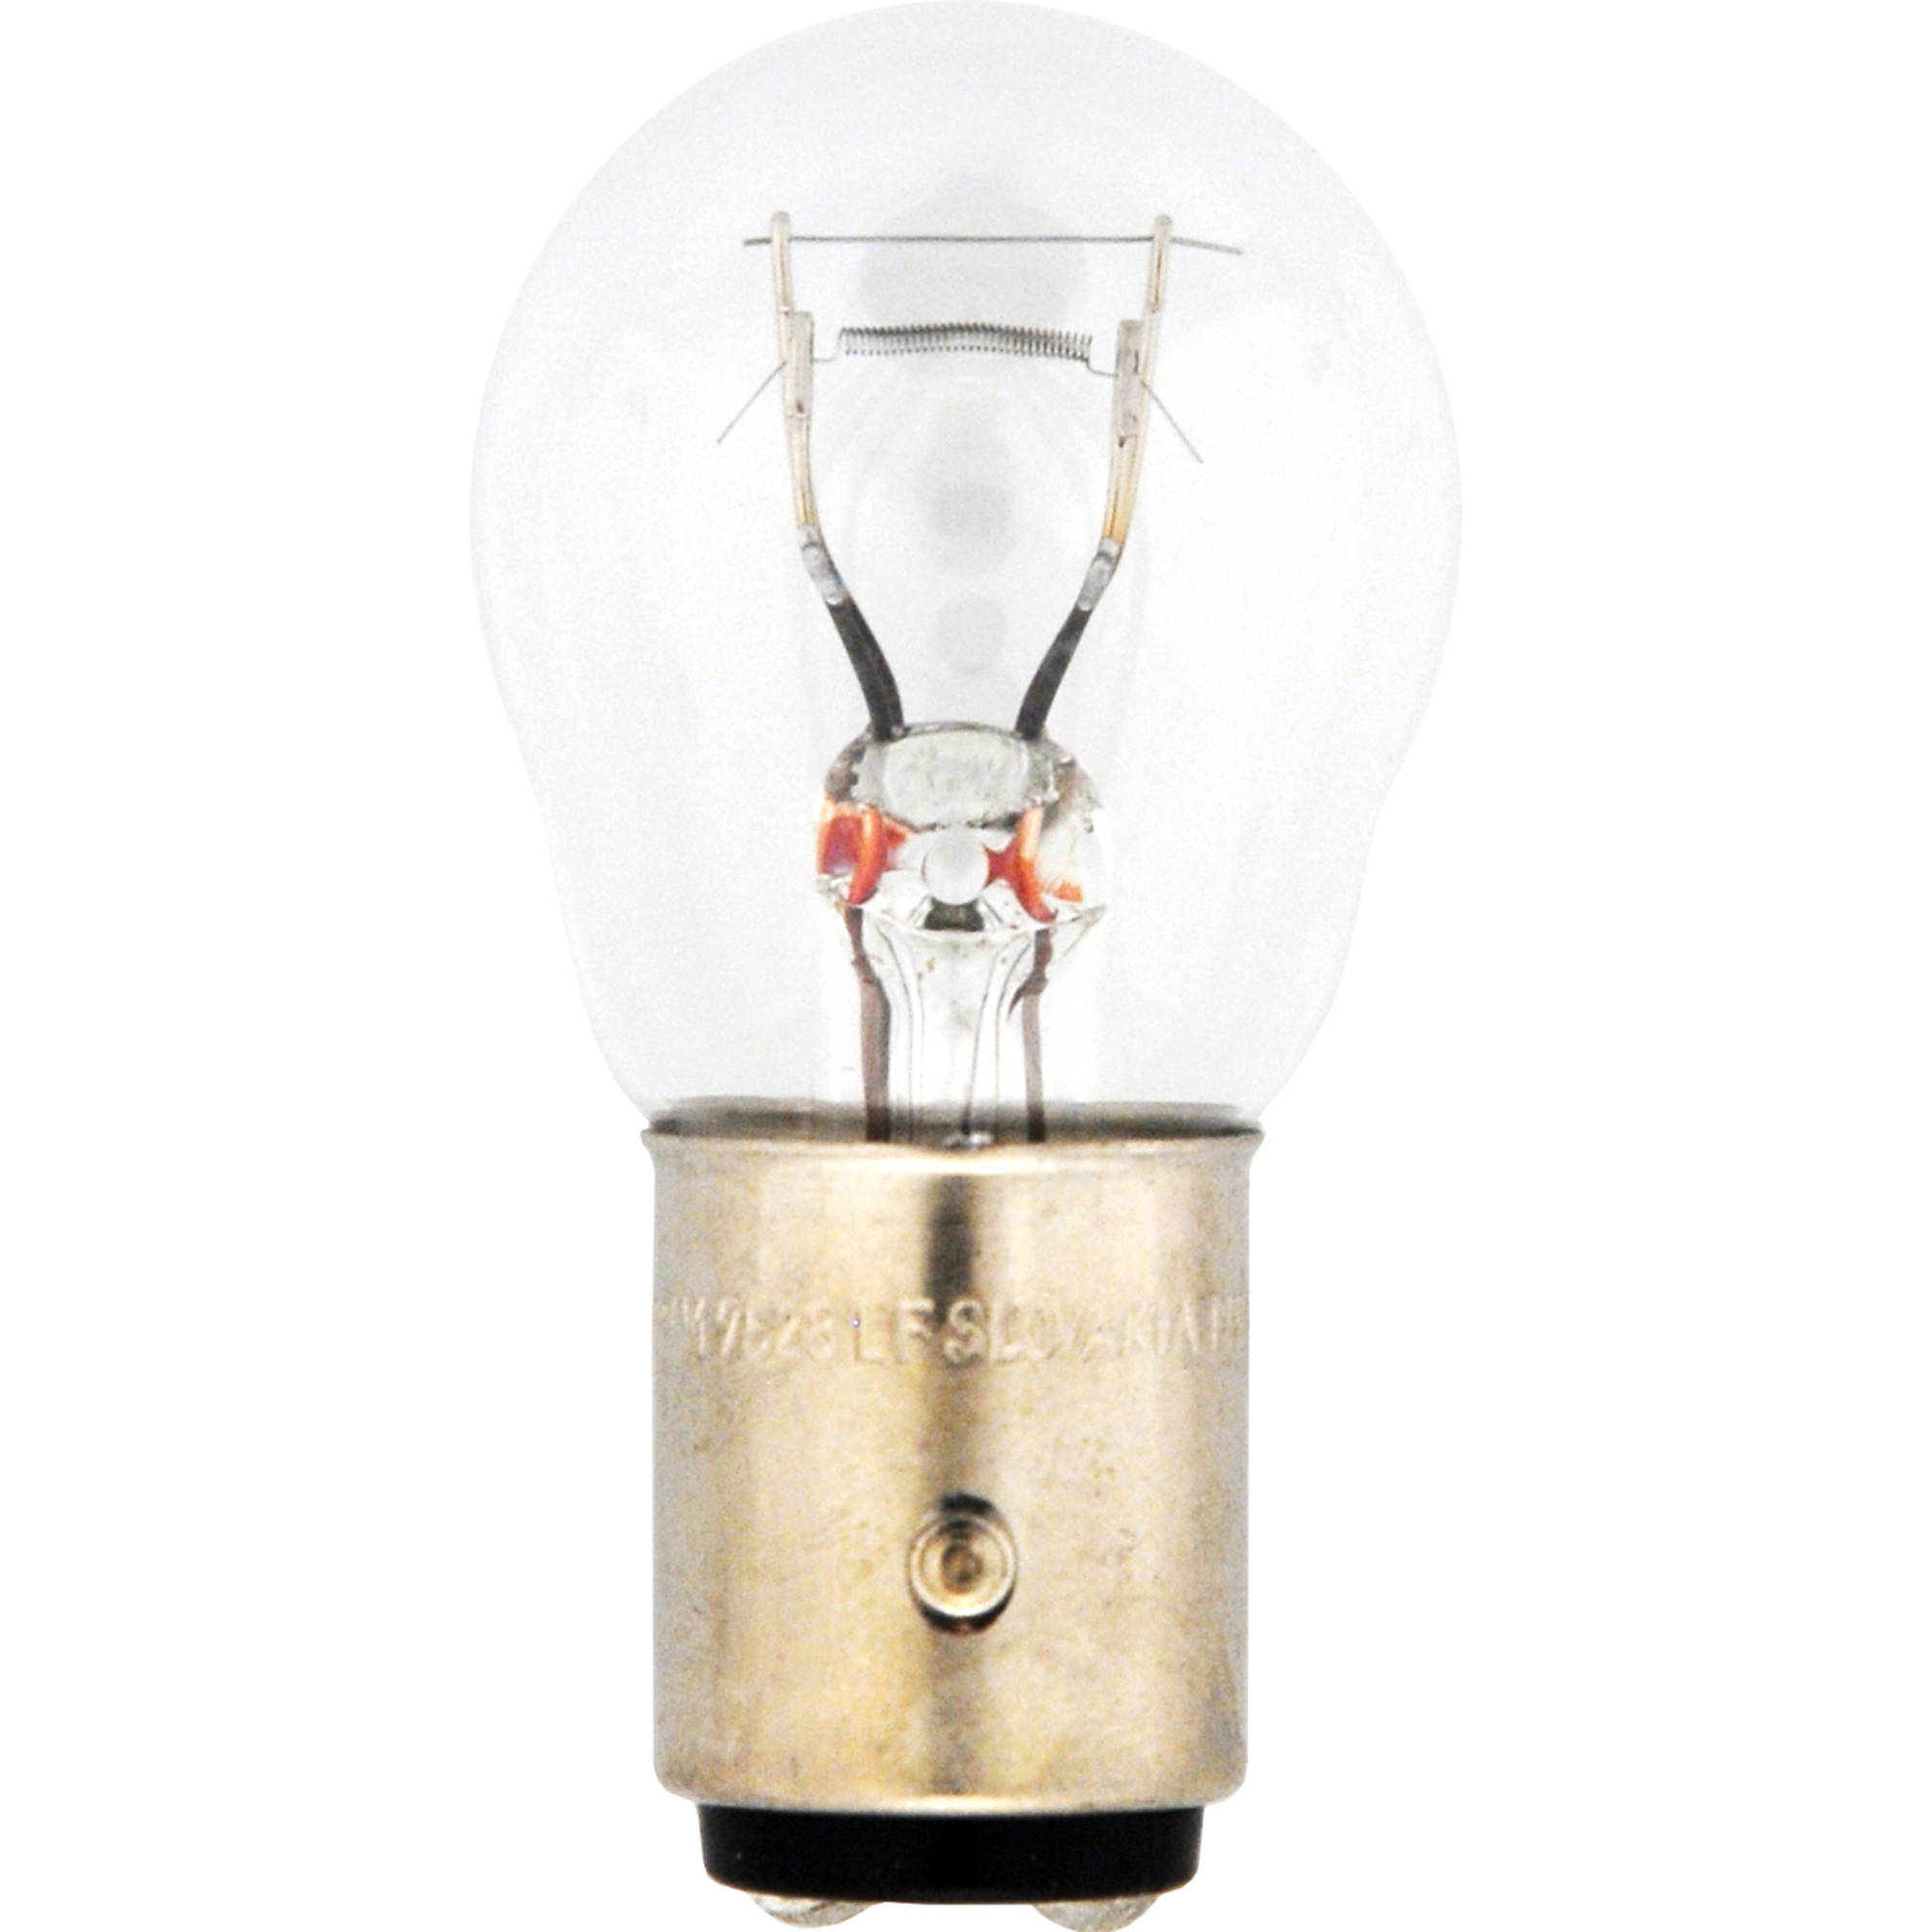 Pack of 10 Bulbs 2057 Bulb from Micro Lamp Can be used as a 1157